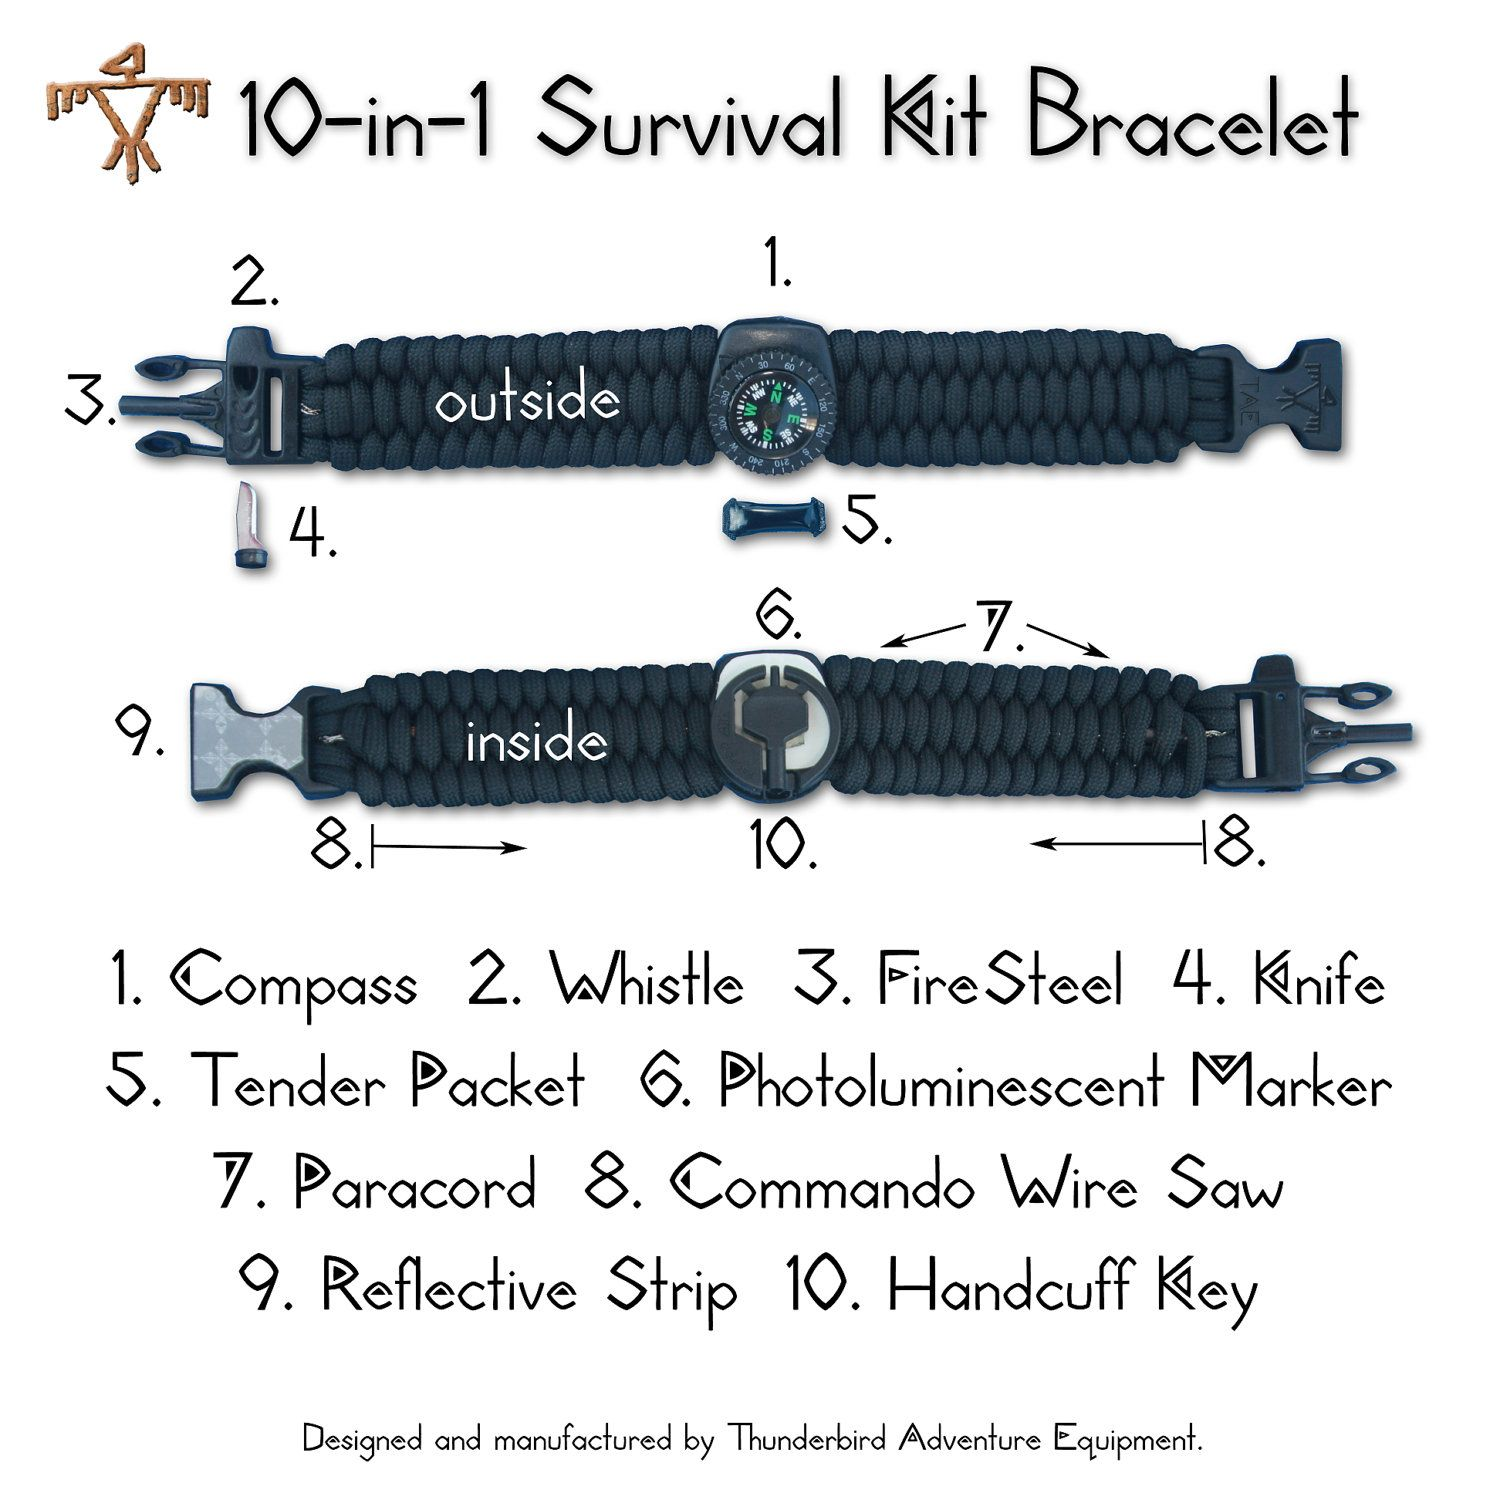 I WANT ONE!!!  10-in-1 Survival Kit Bracelet: Compass, Whistle, FireSteel, Knife, Tender, Light, Paracord, Saw, Mirror, & Handcuff Key. Utilitary via Etsy.